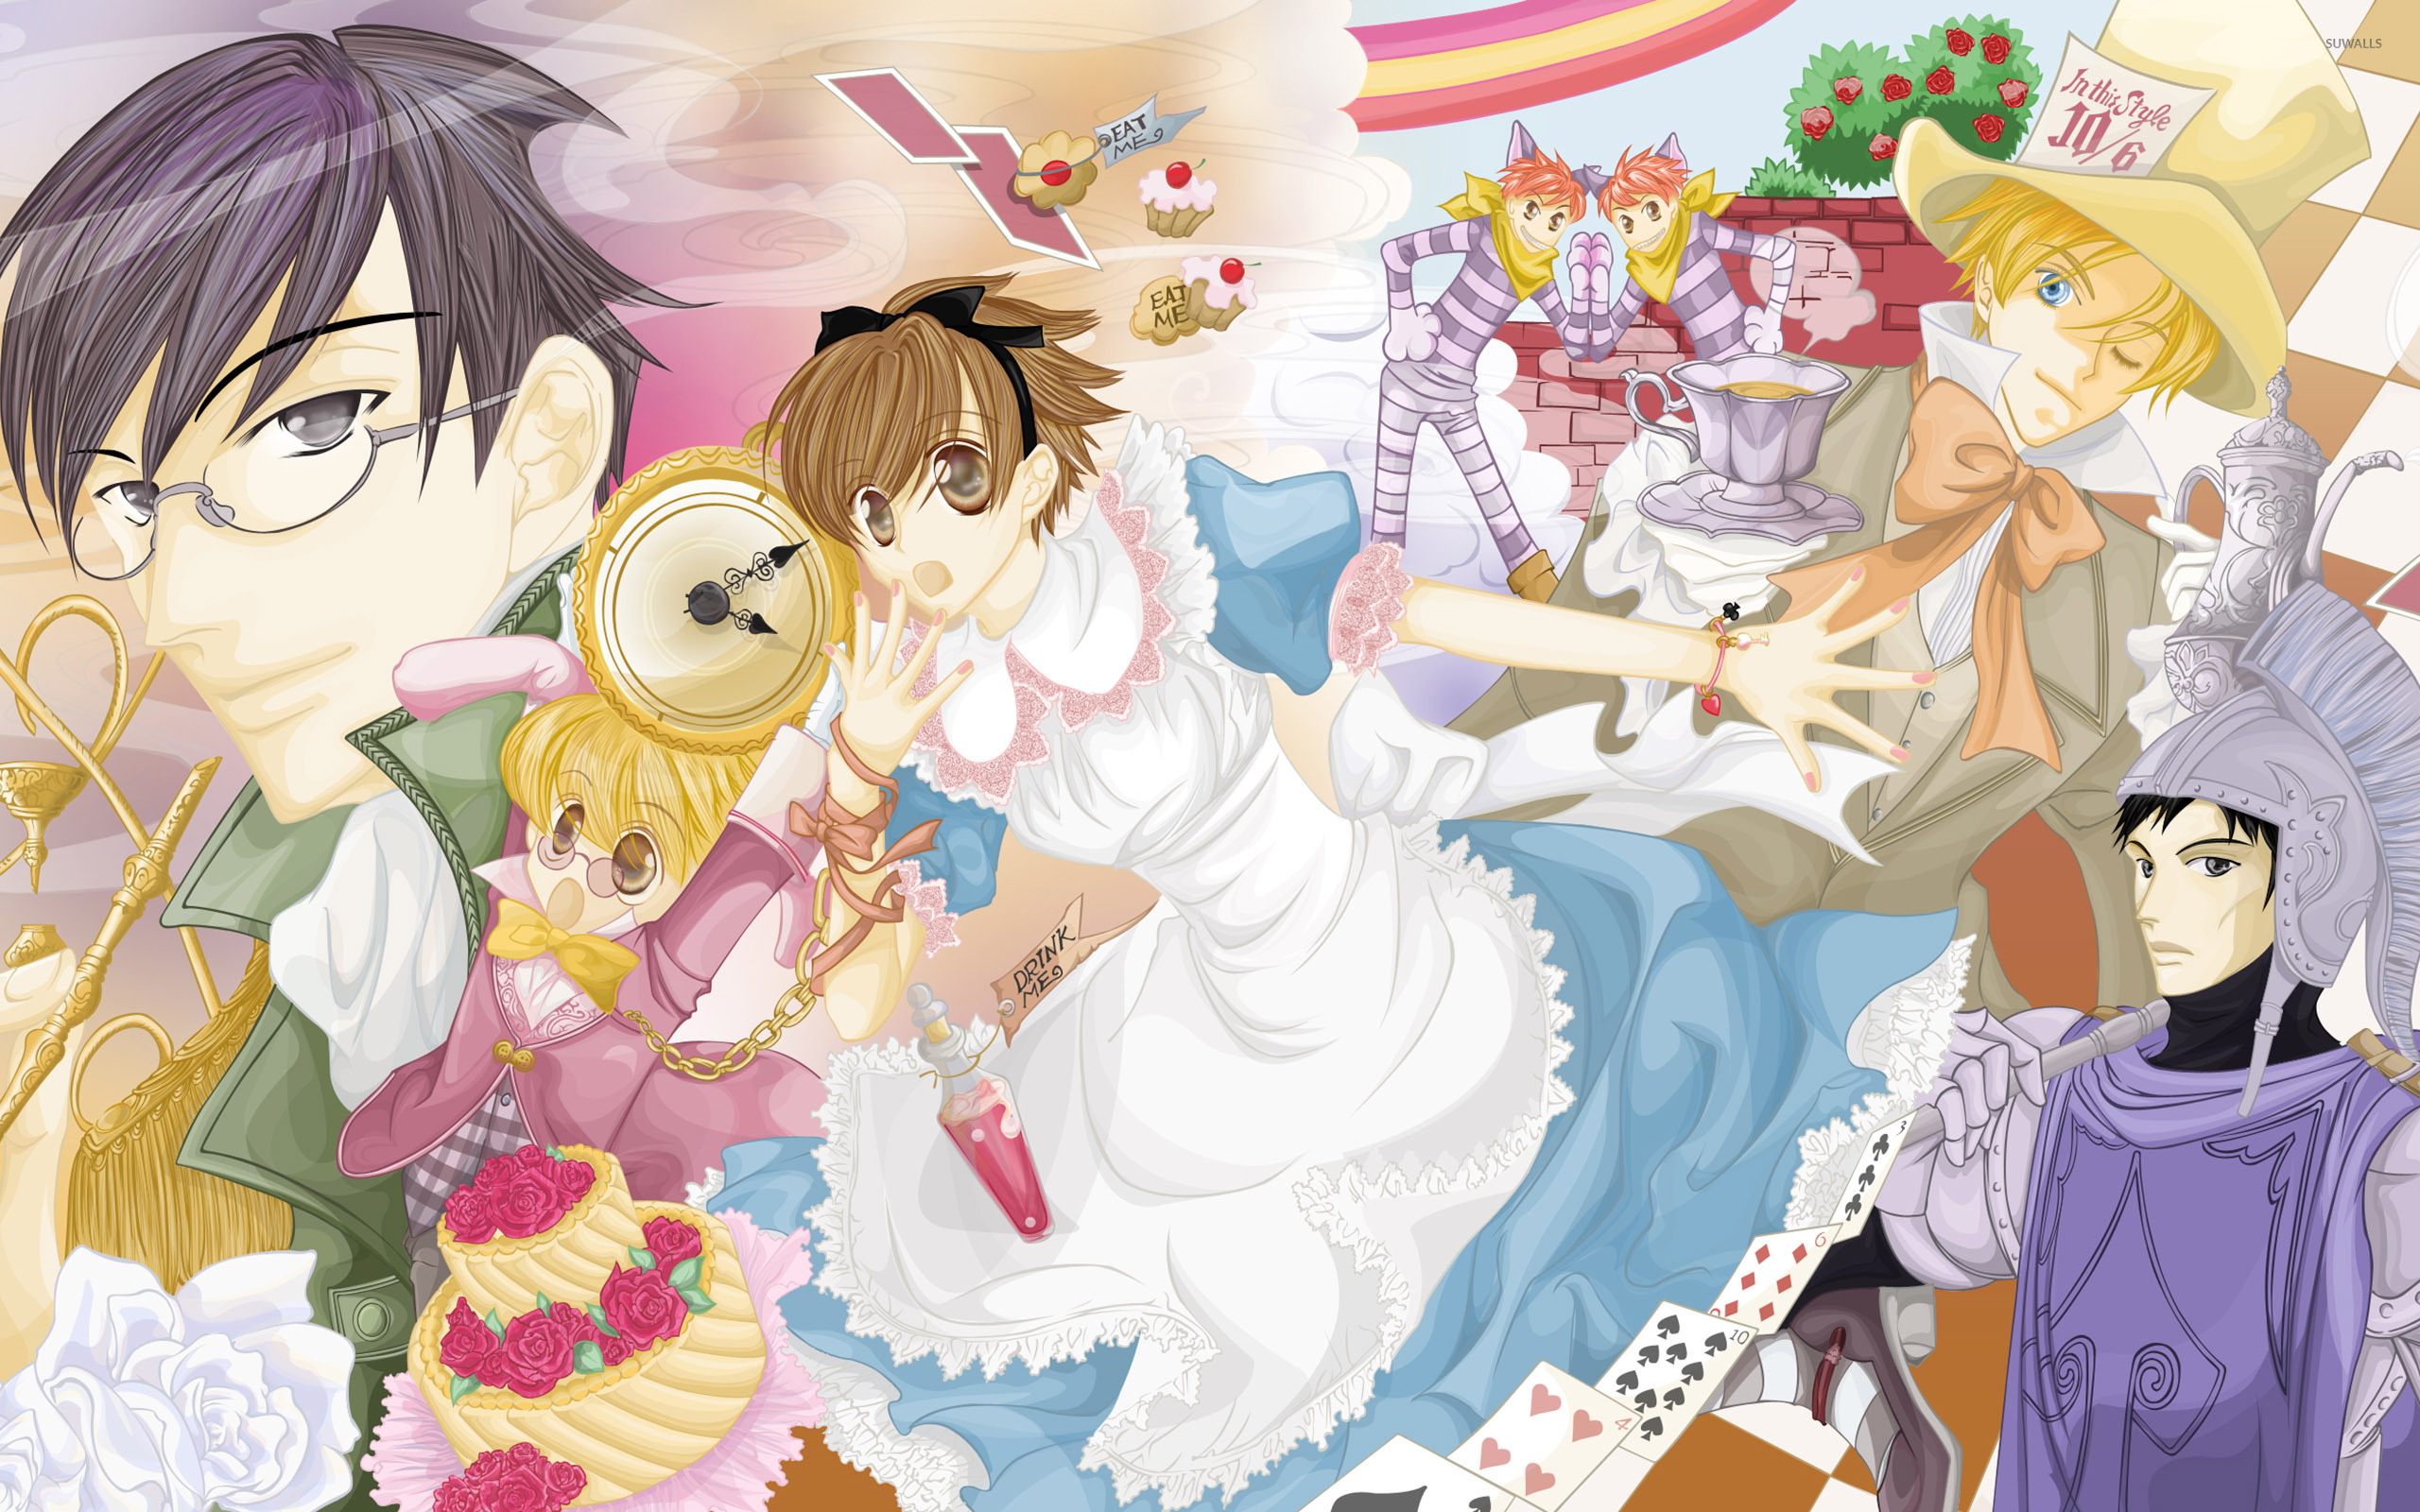 Ouran High School Host Club 3 Wallpaper Anime Wallpapers 29298